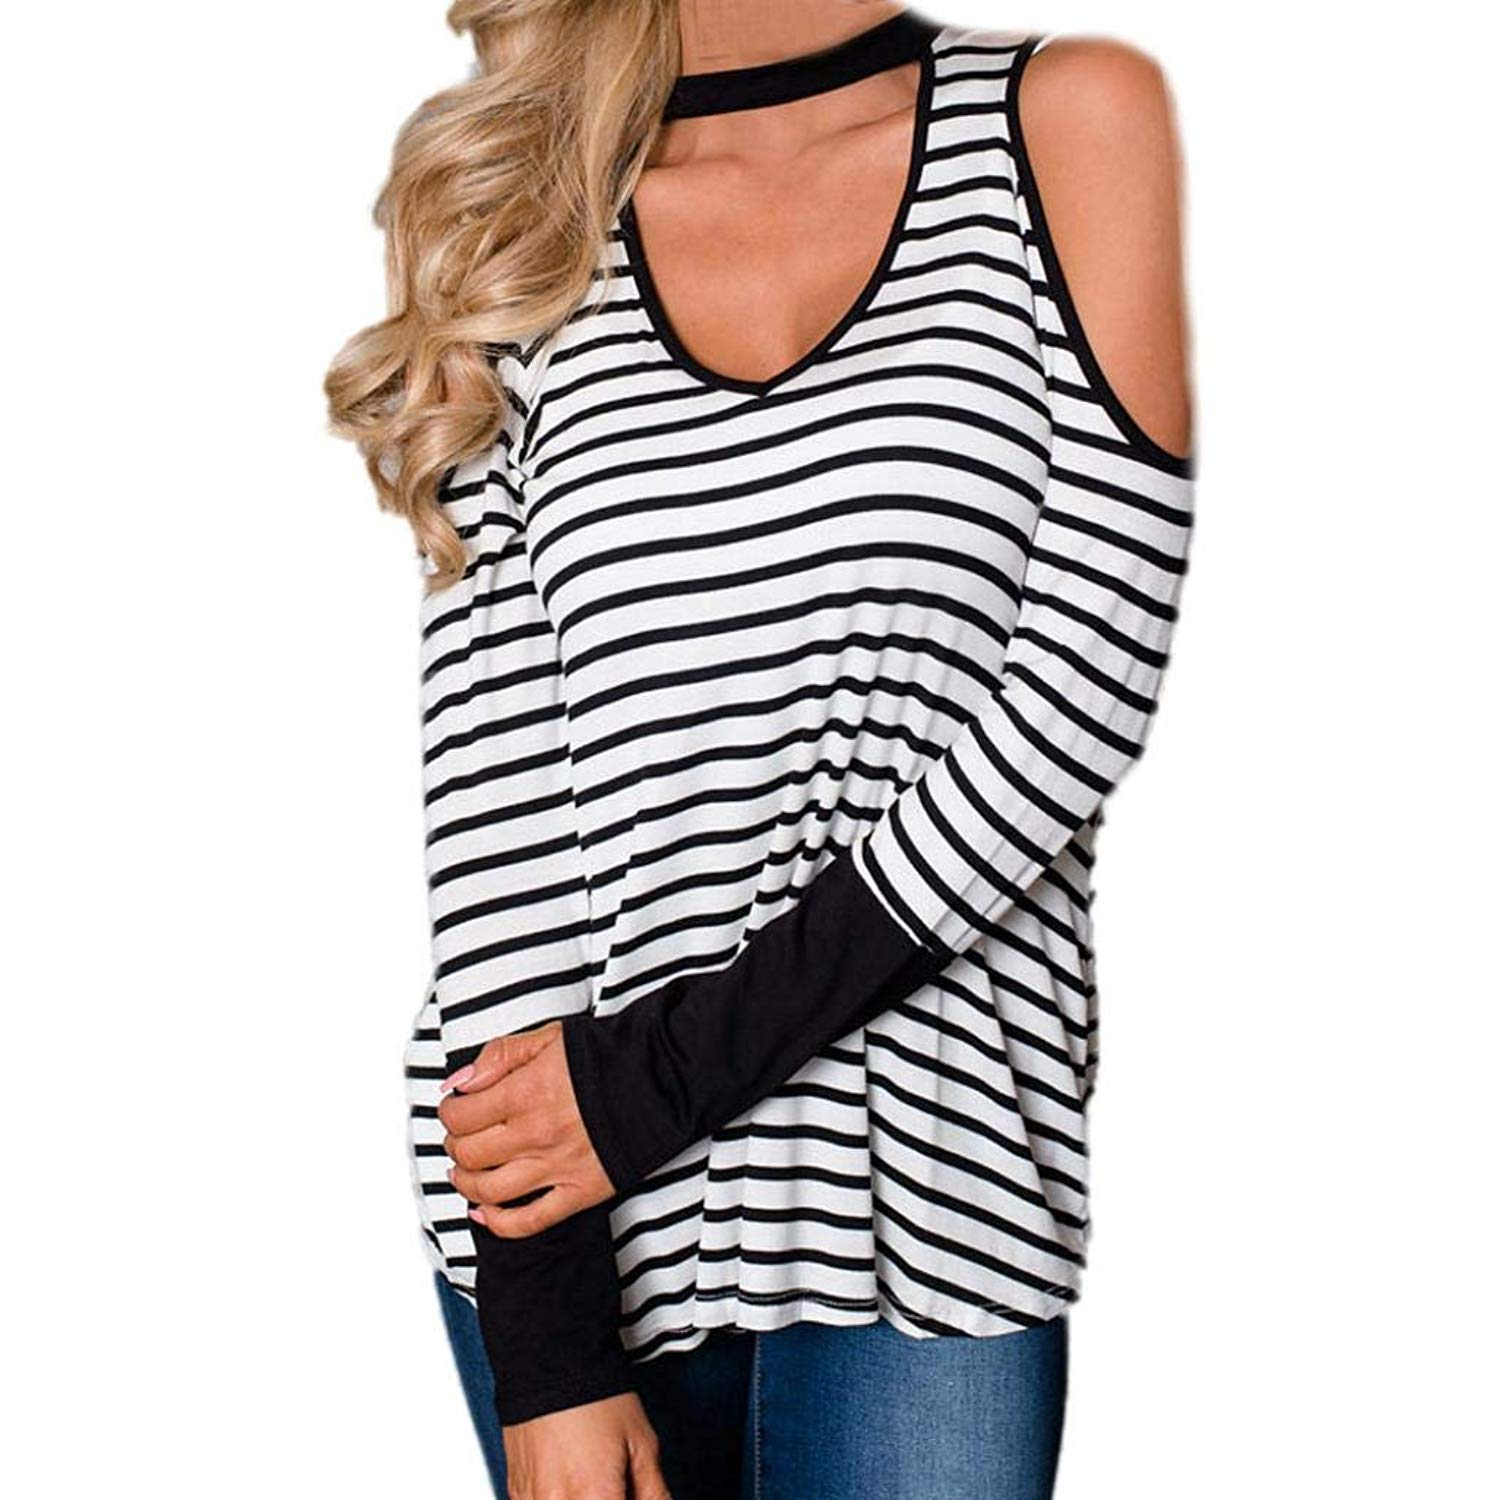 Feitengtd Cold Shoulder Women T-Shirt V-Neck Long Sleeve Loose Fit Tunic Casual Pullover Tops